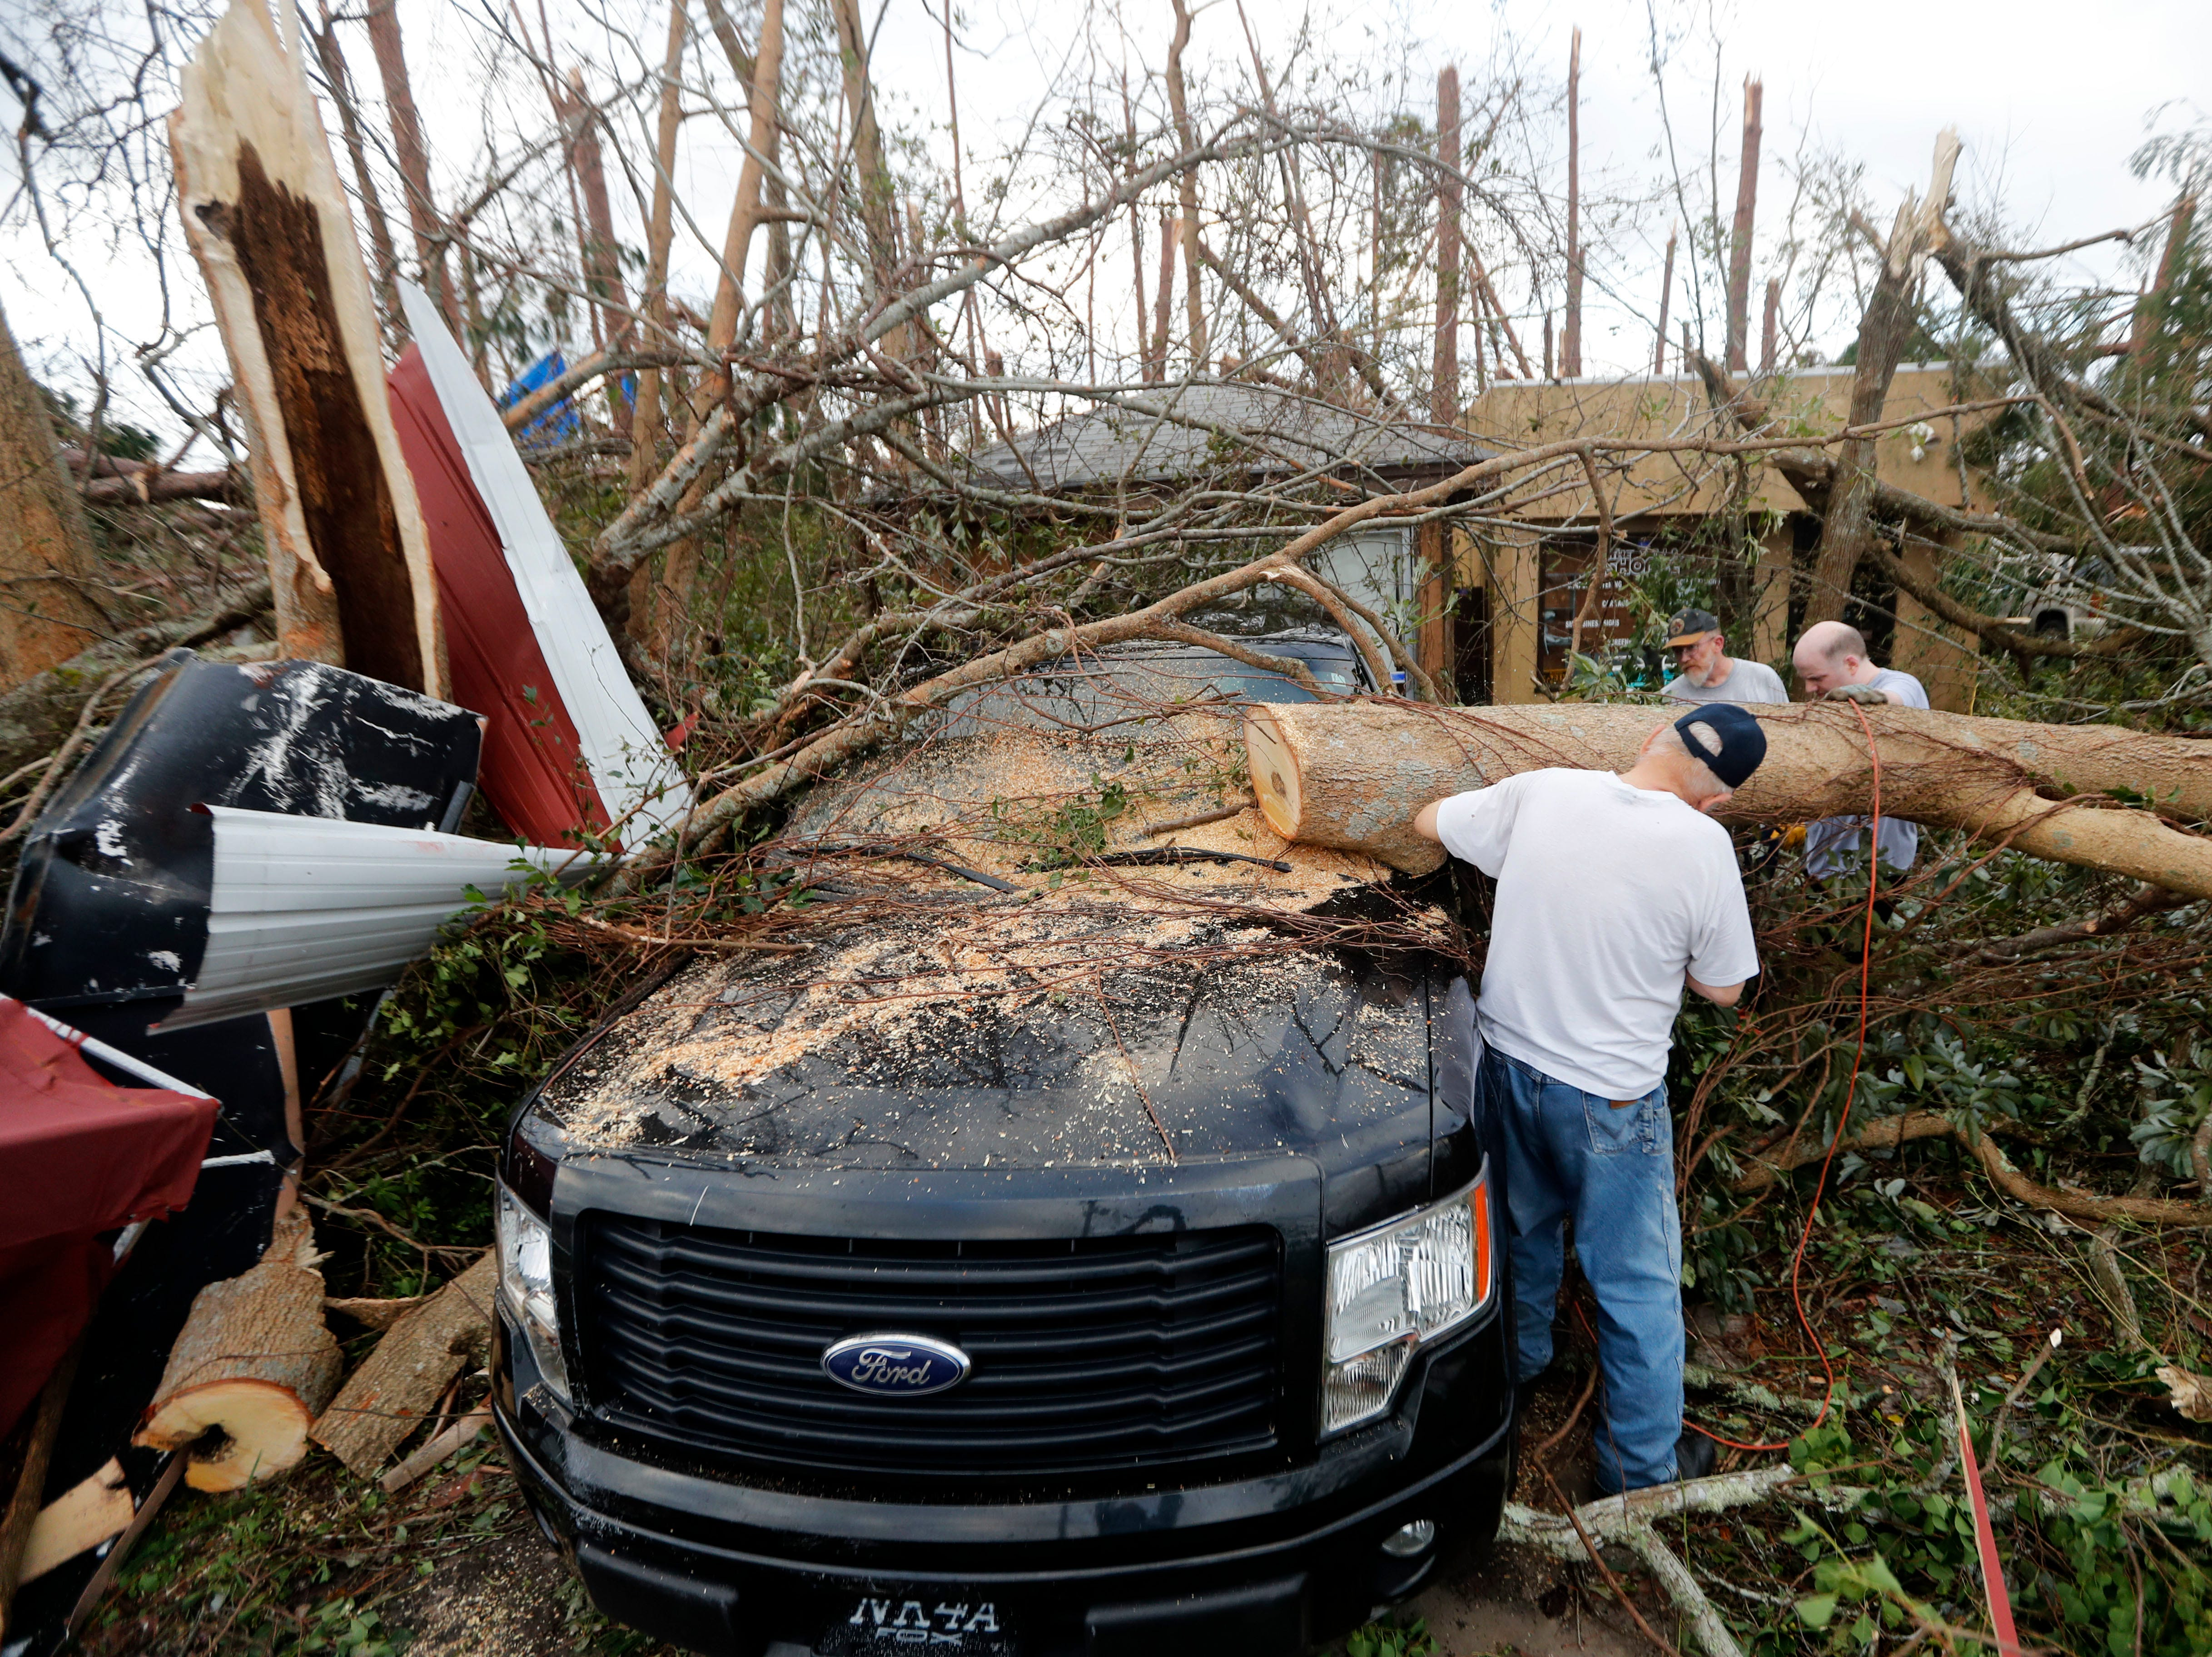 People cut away a tree that'll on a vehicle in the aftermath of Hurricane Michael in Panama City, Fla., Thursday, Oct. 11, 2018.